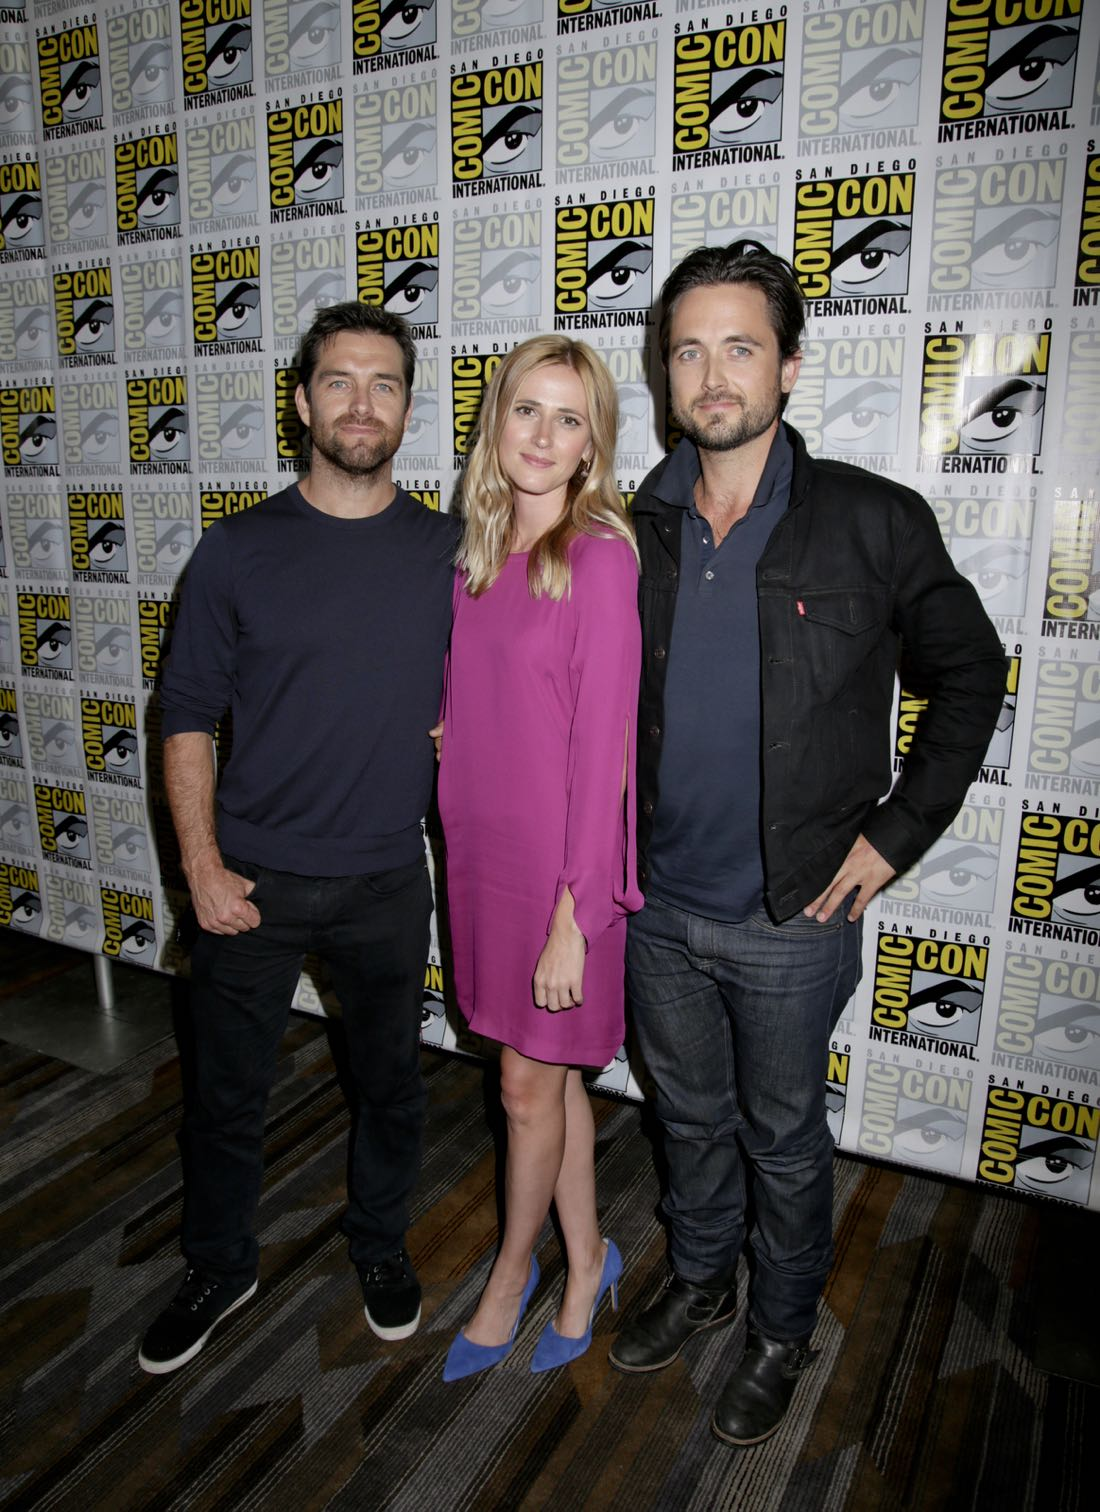 Justin Chatwin, Megan Ketch, and Antony Starr of American Gothic at COMIC-CON® 2016 in San Diego, California. Photo: Johnny Vy/CBS ©2016 CBS Broadcasting, Inc. All Rights Reserved